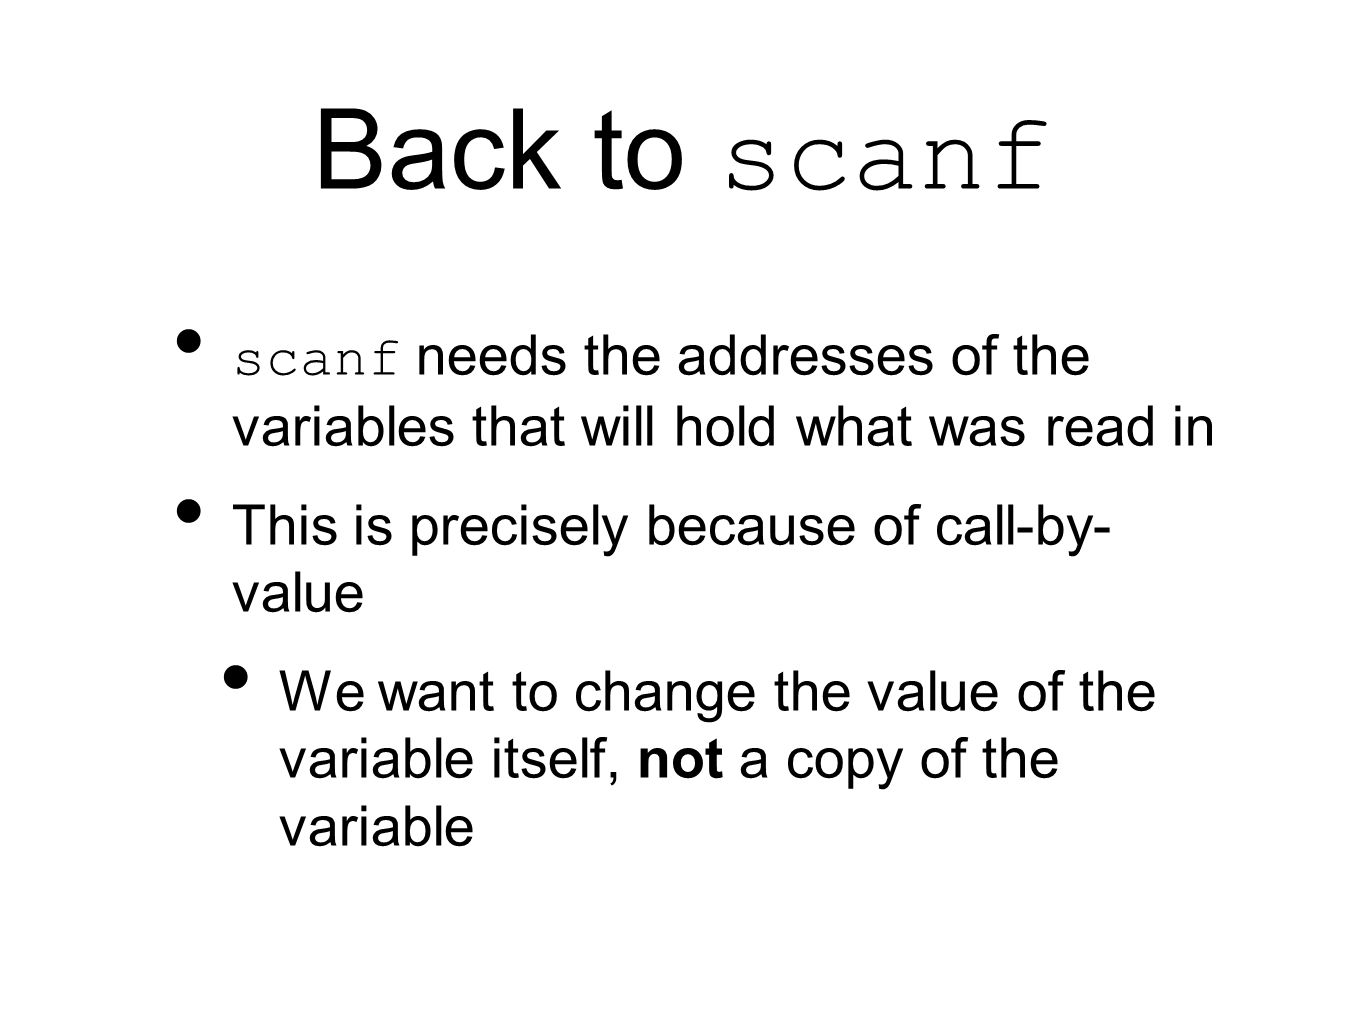 Back to scanf scanf needs the addresses of the variables that will hold what was read in This is precisely because of call-by- value We want to change the value of the variable itself, not a copy of the variable